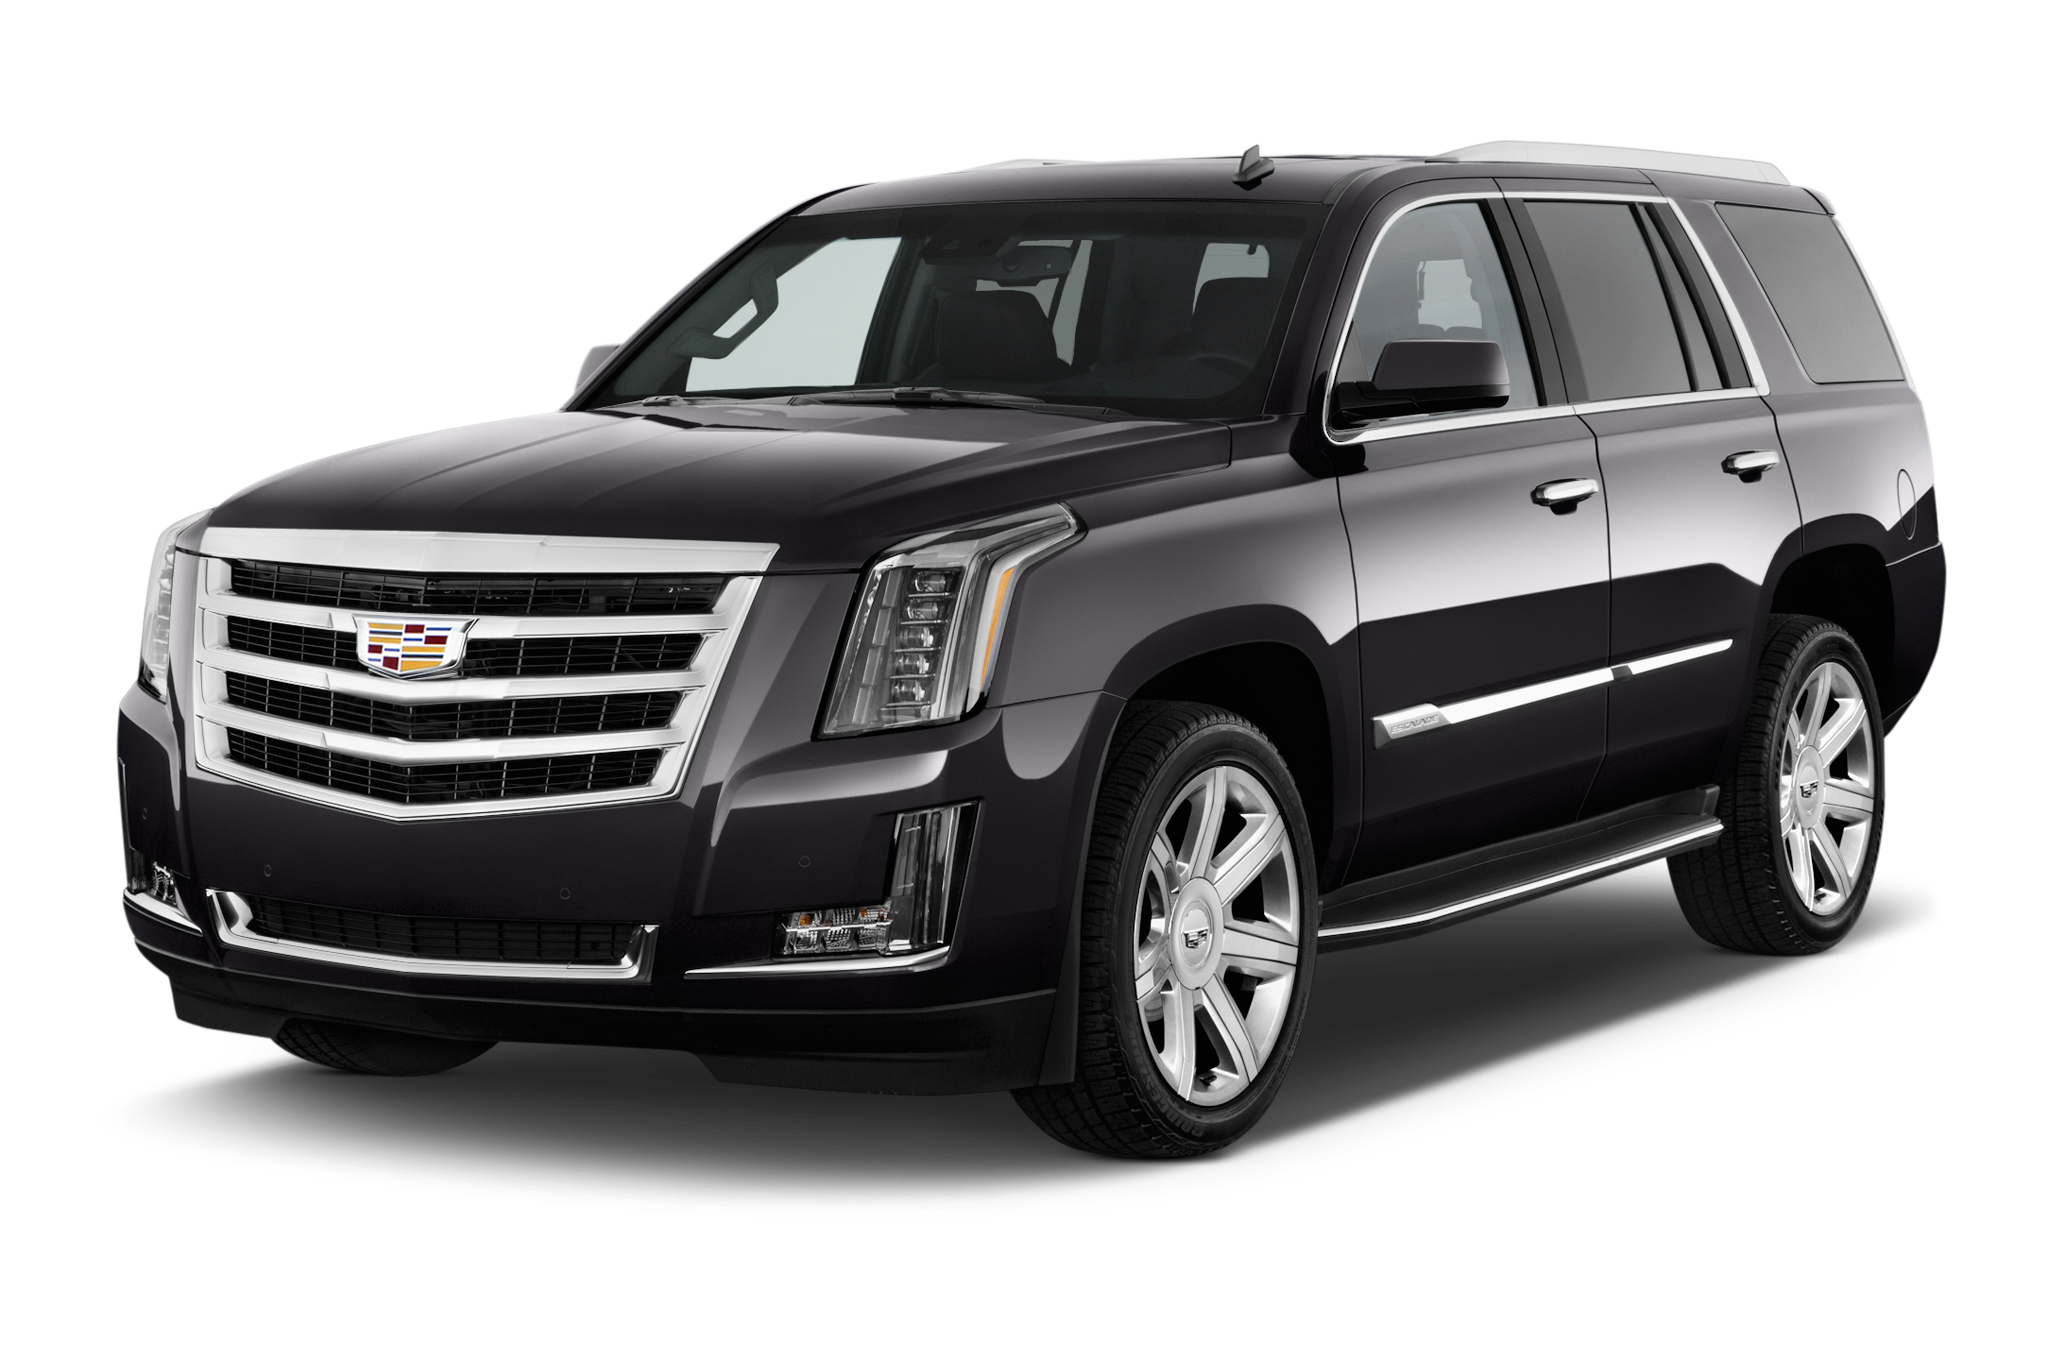 Cadilac car clipart image royalty free library Cadillac PNG Transparent Free Images | PNG Only image royalty free library